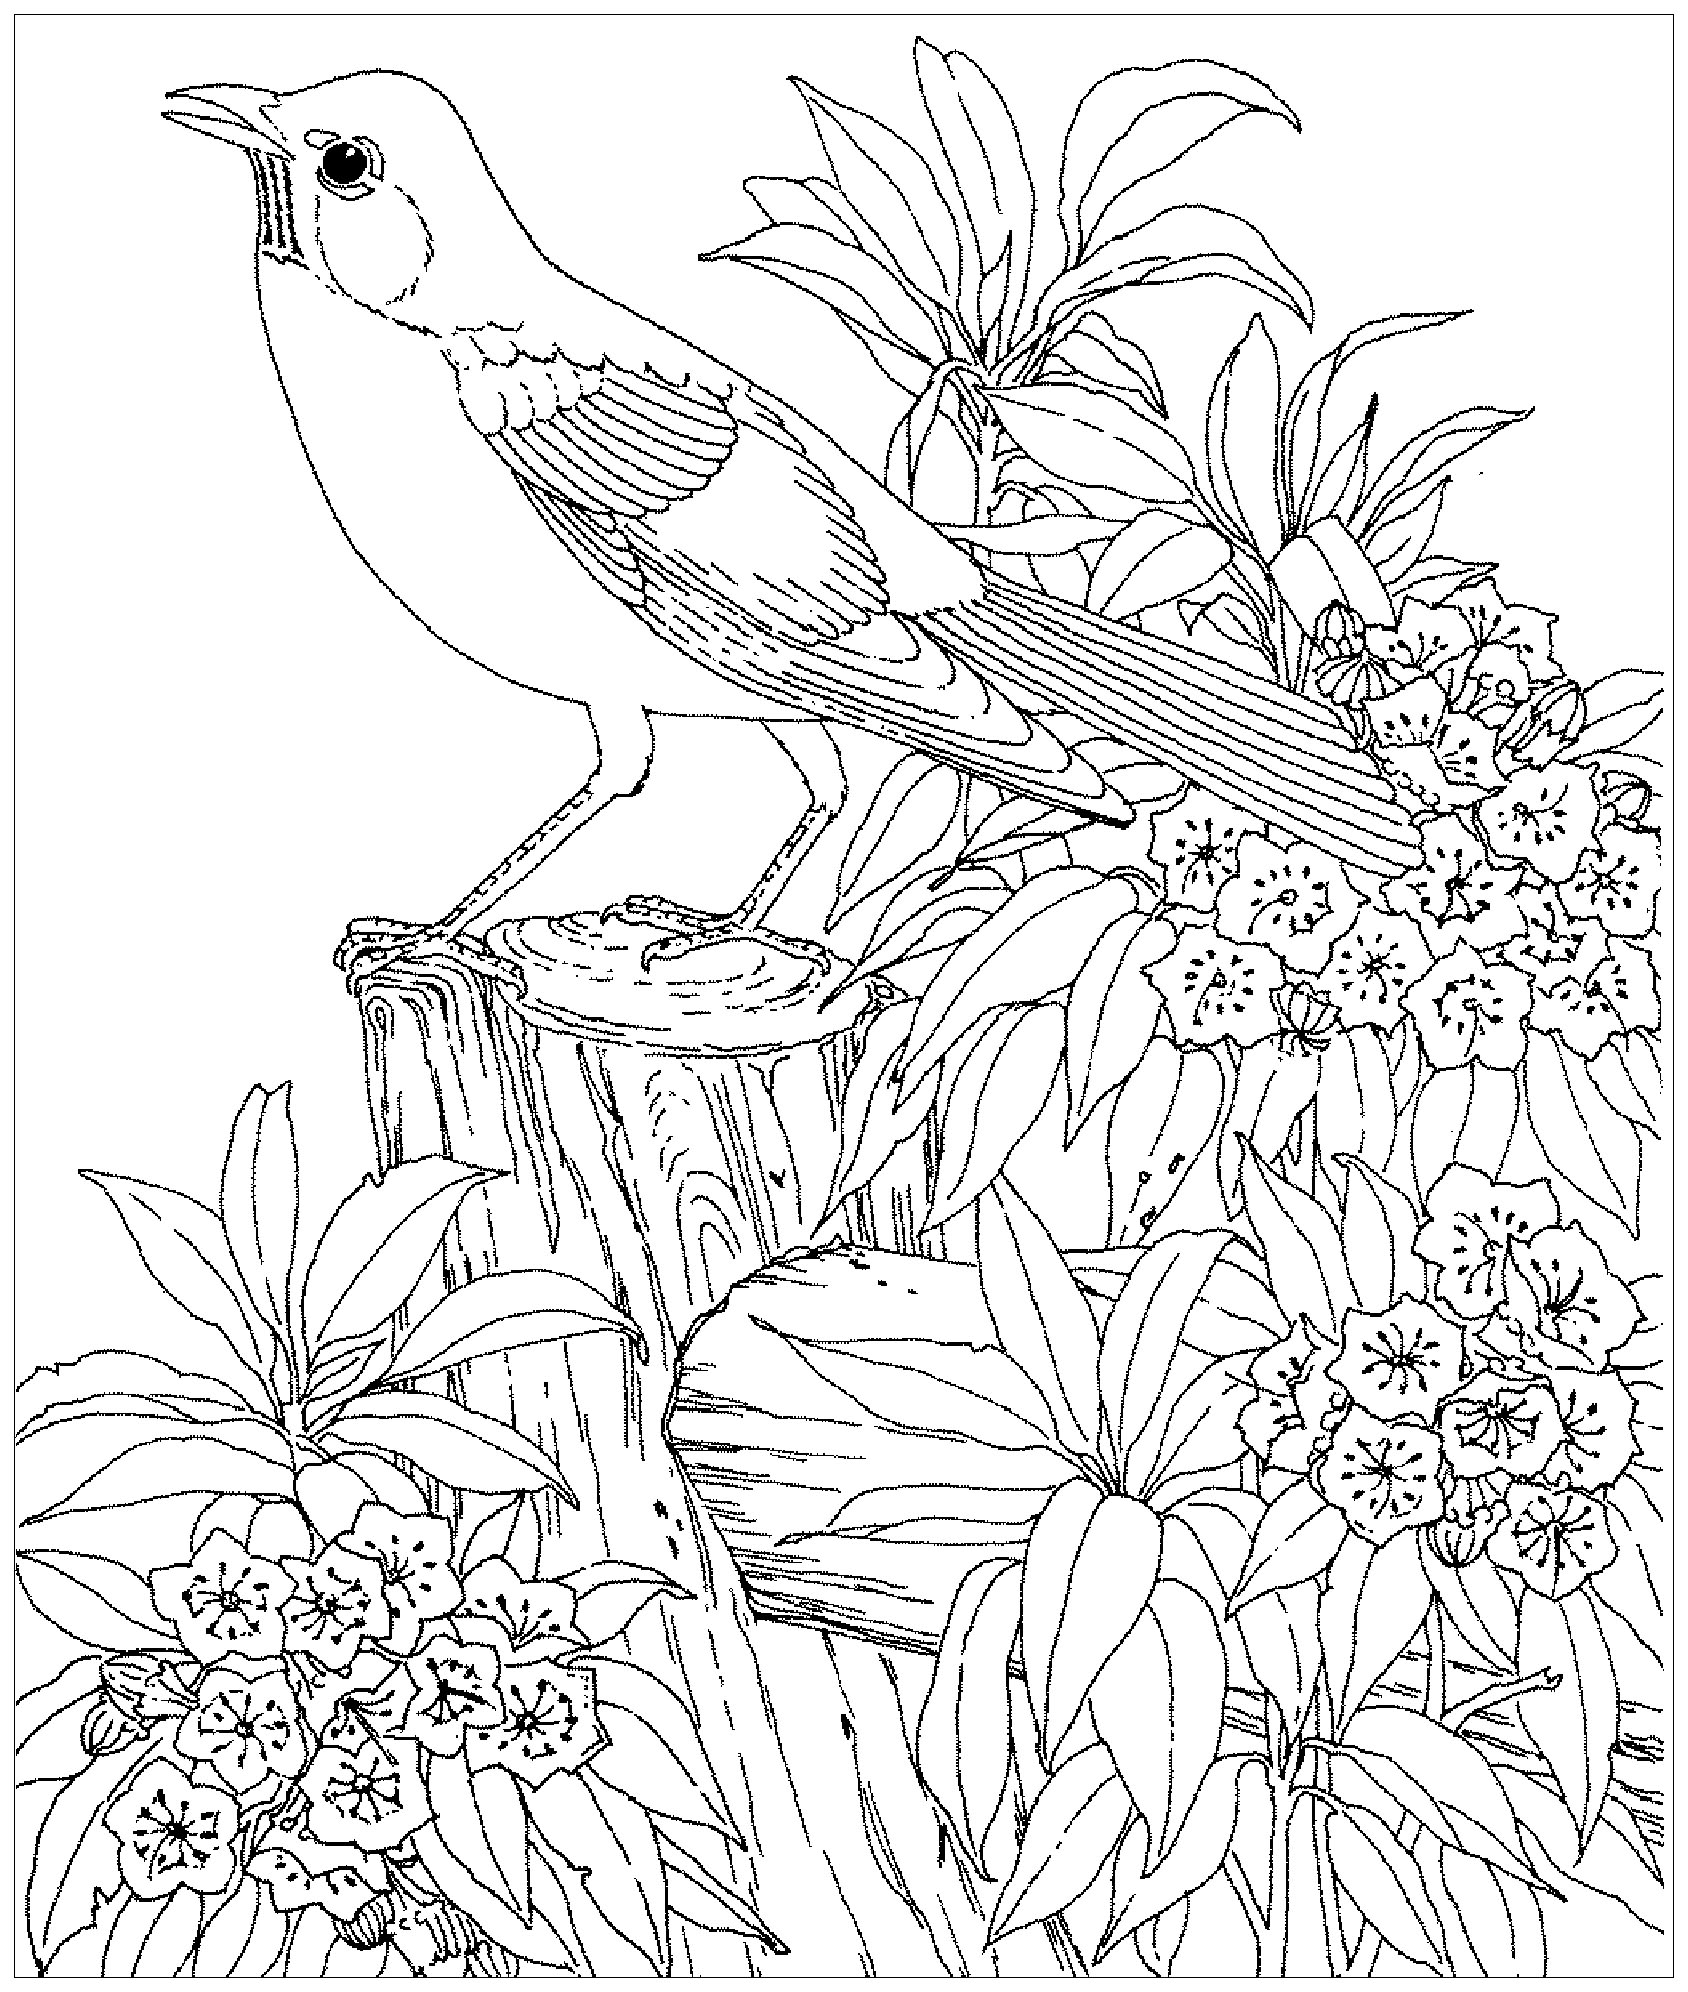 bird colouring pages for kids bird coloring pages to download and print for free for kids pages colouring bird